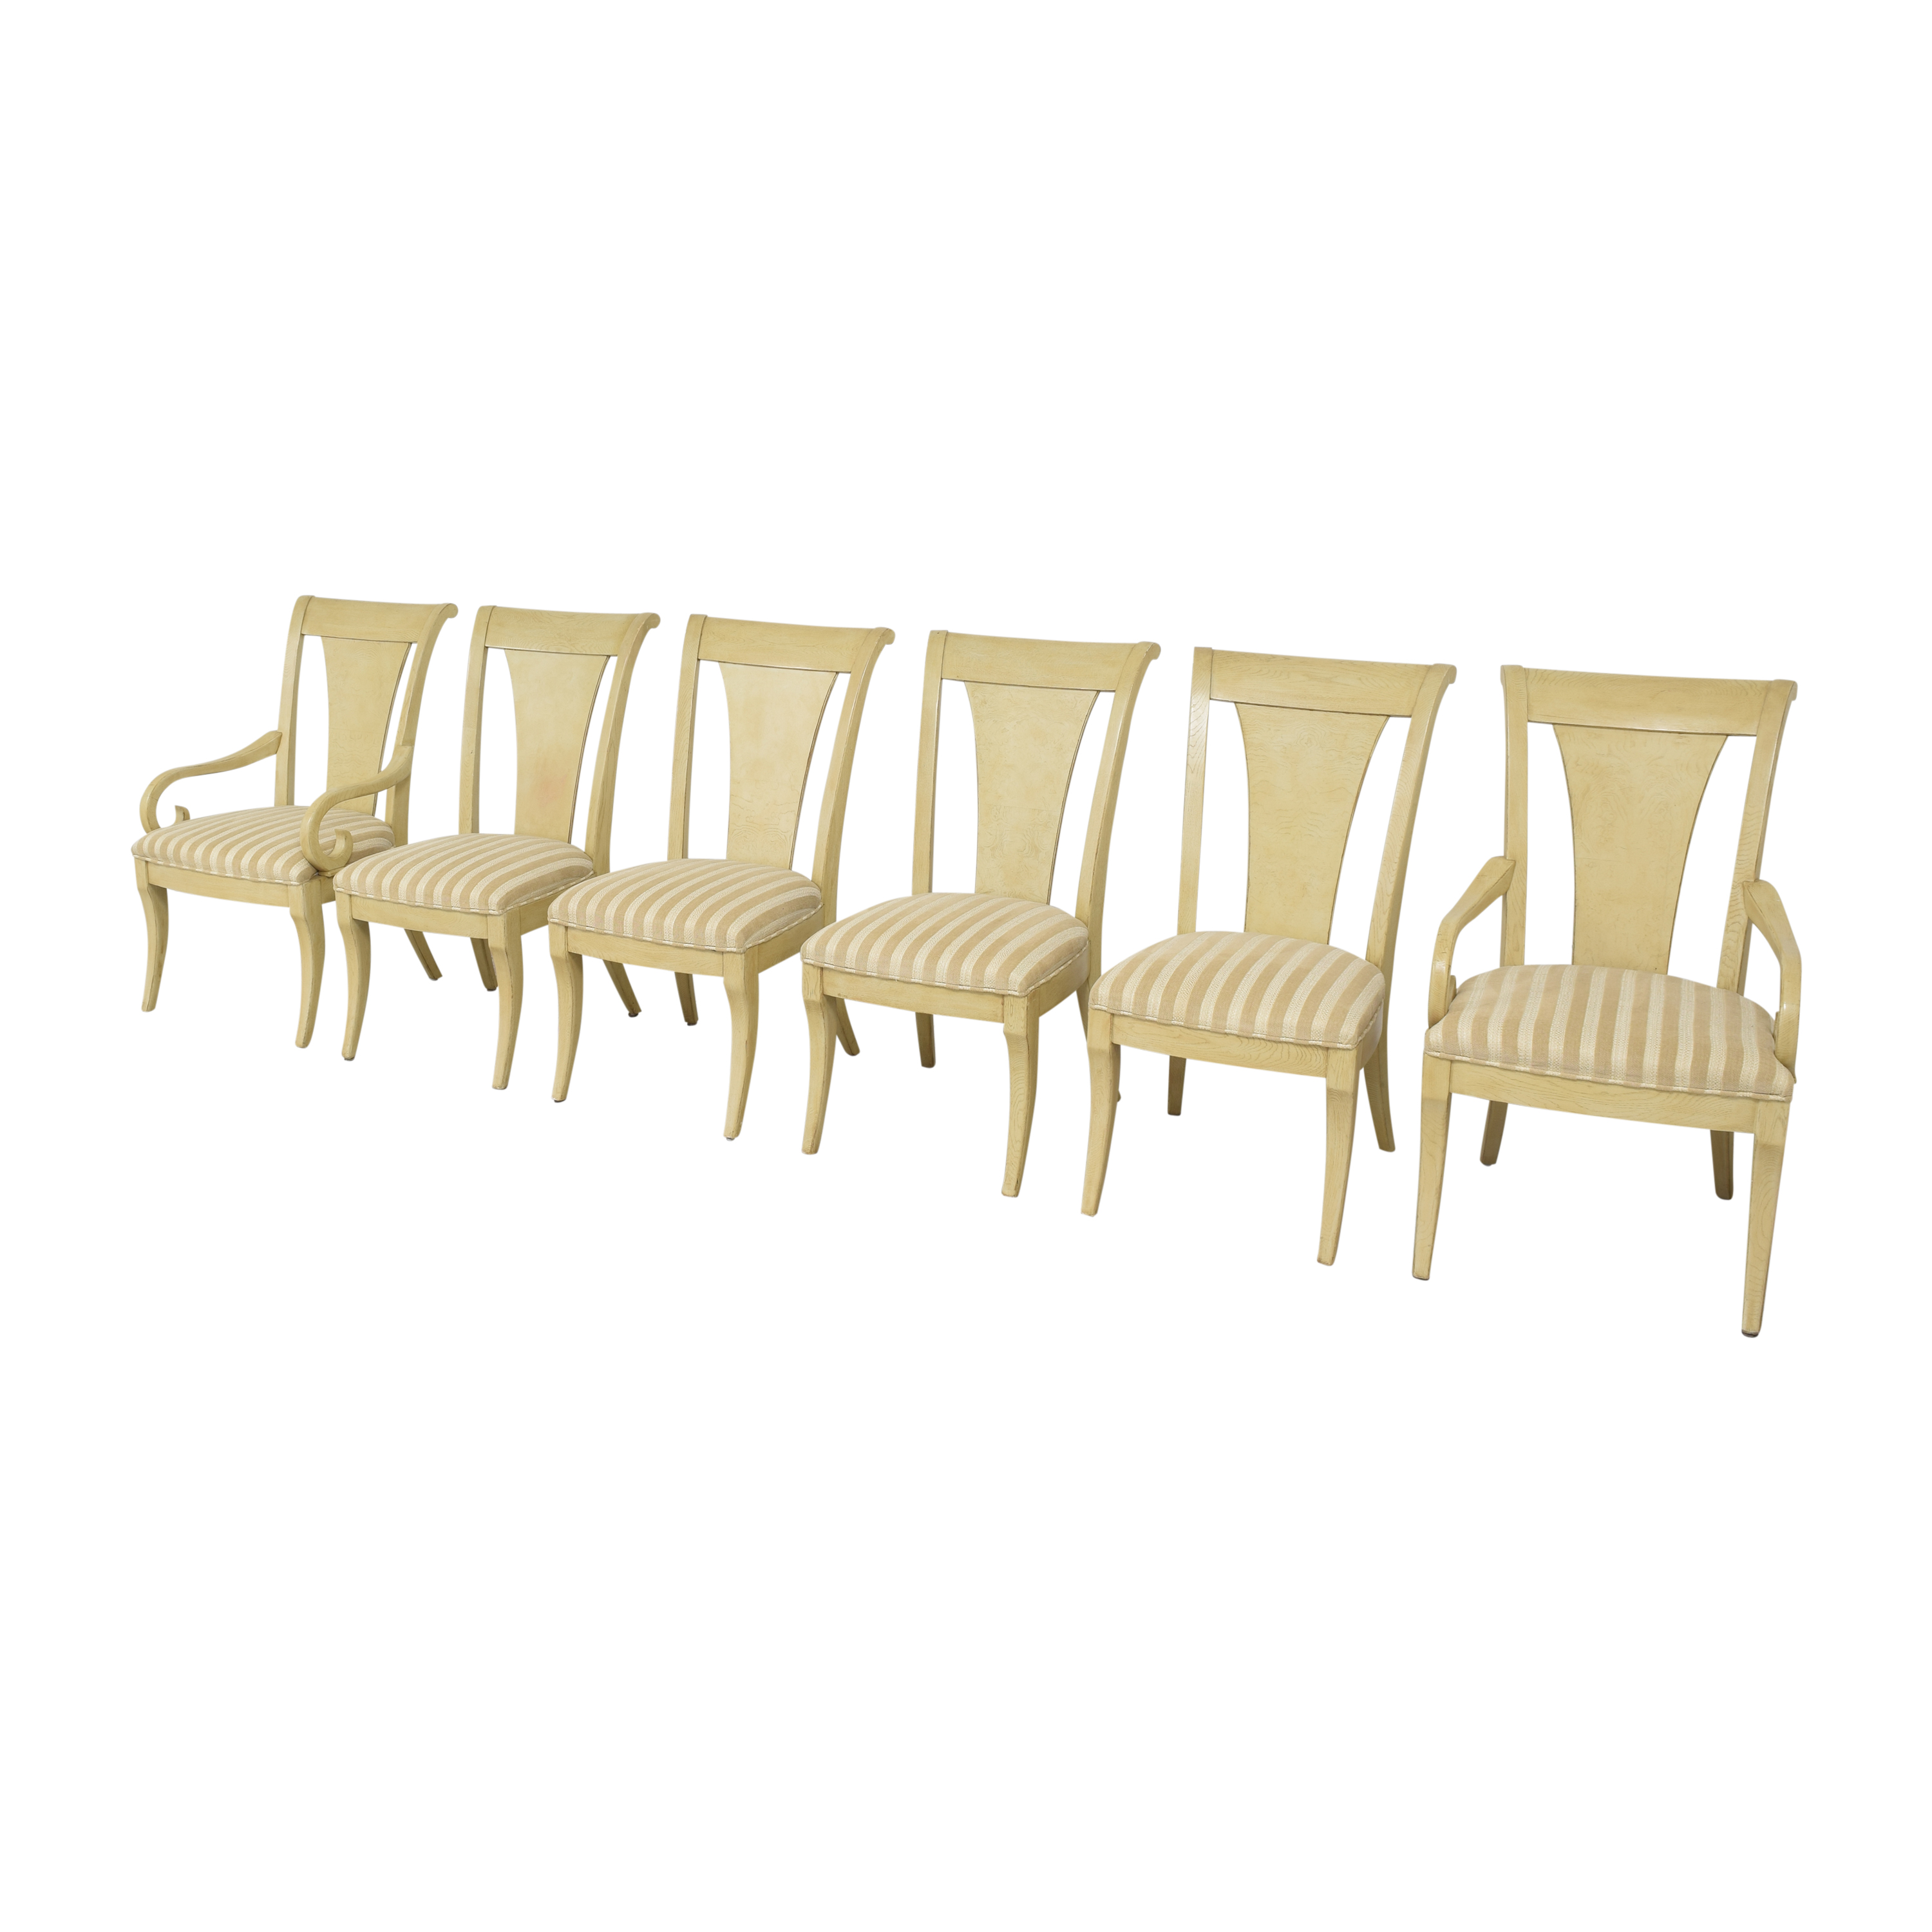 Drexel Heritage Insignia Dining Chairs sale